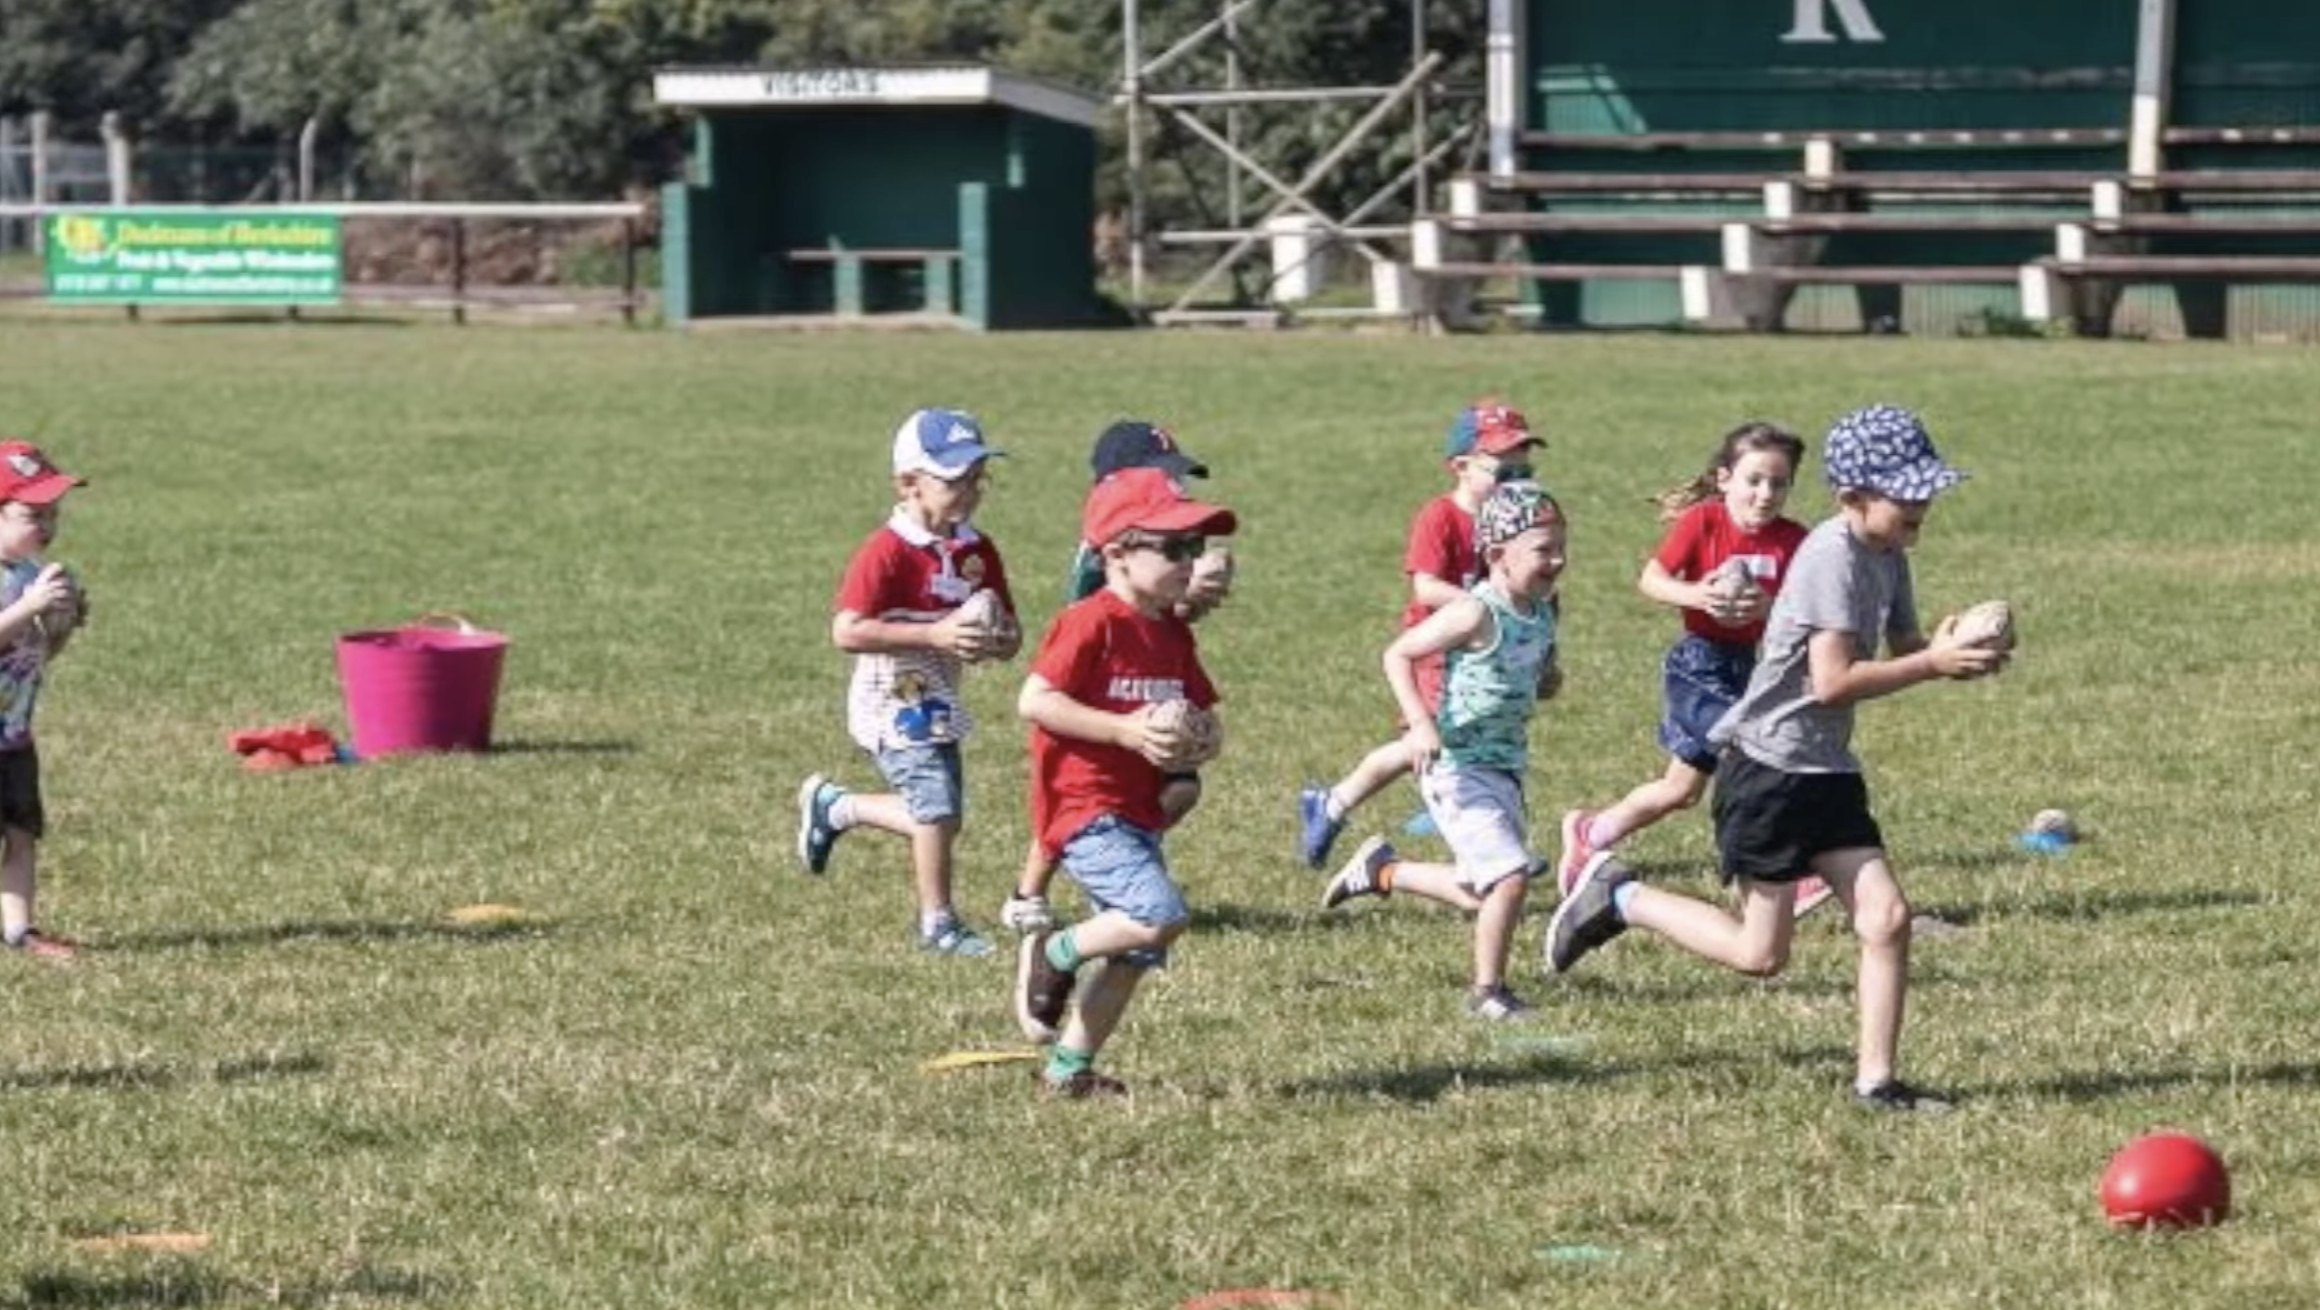 Children run around with balls in their hands at Reading Rugby Club's didi rugby session